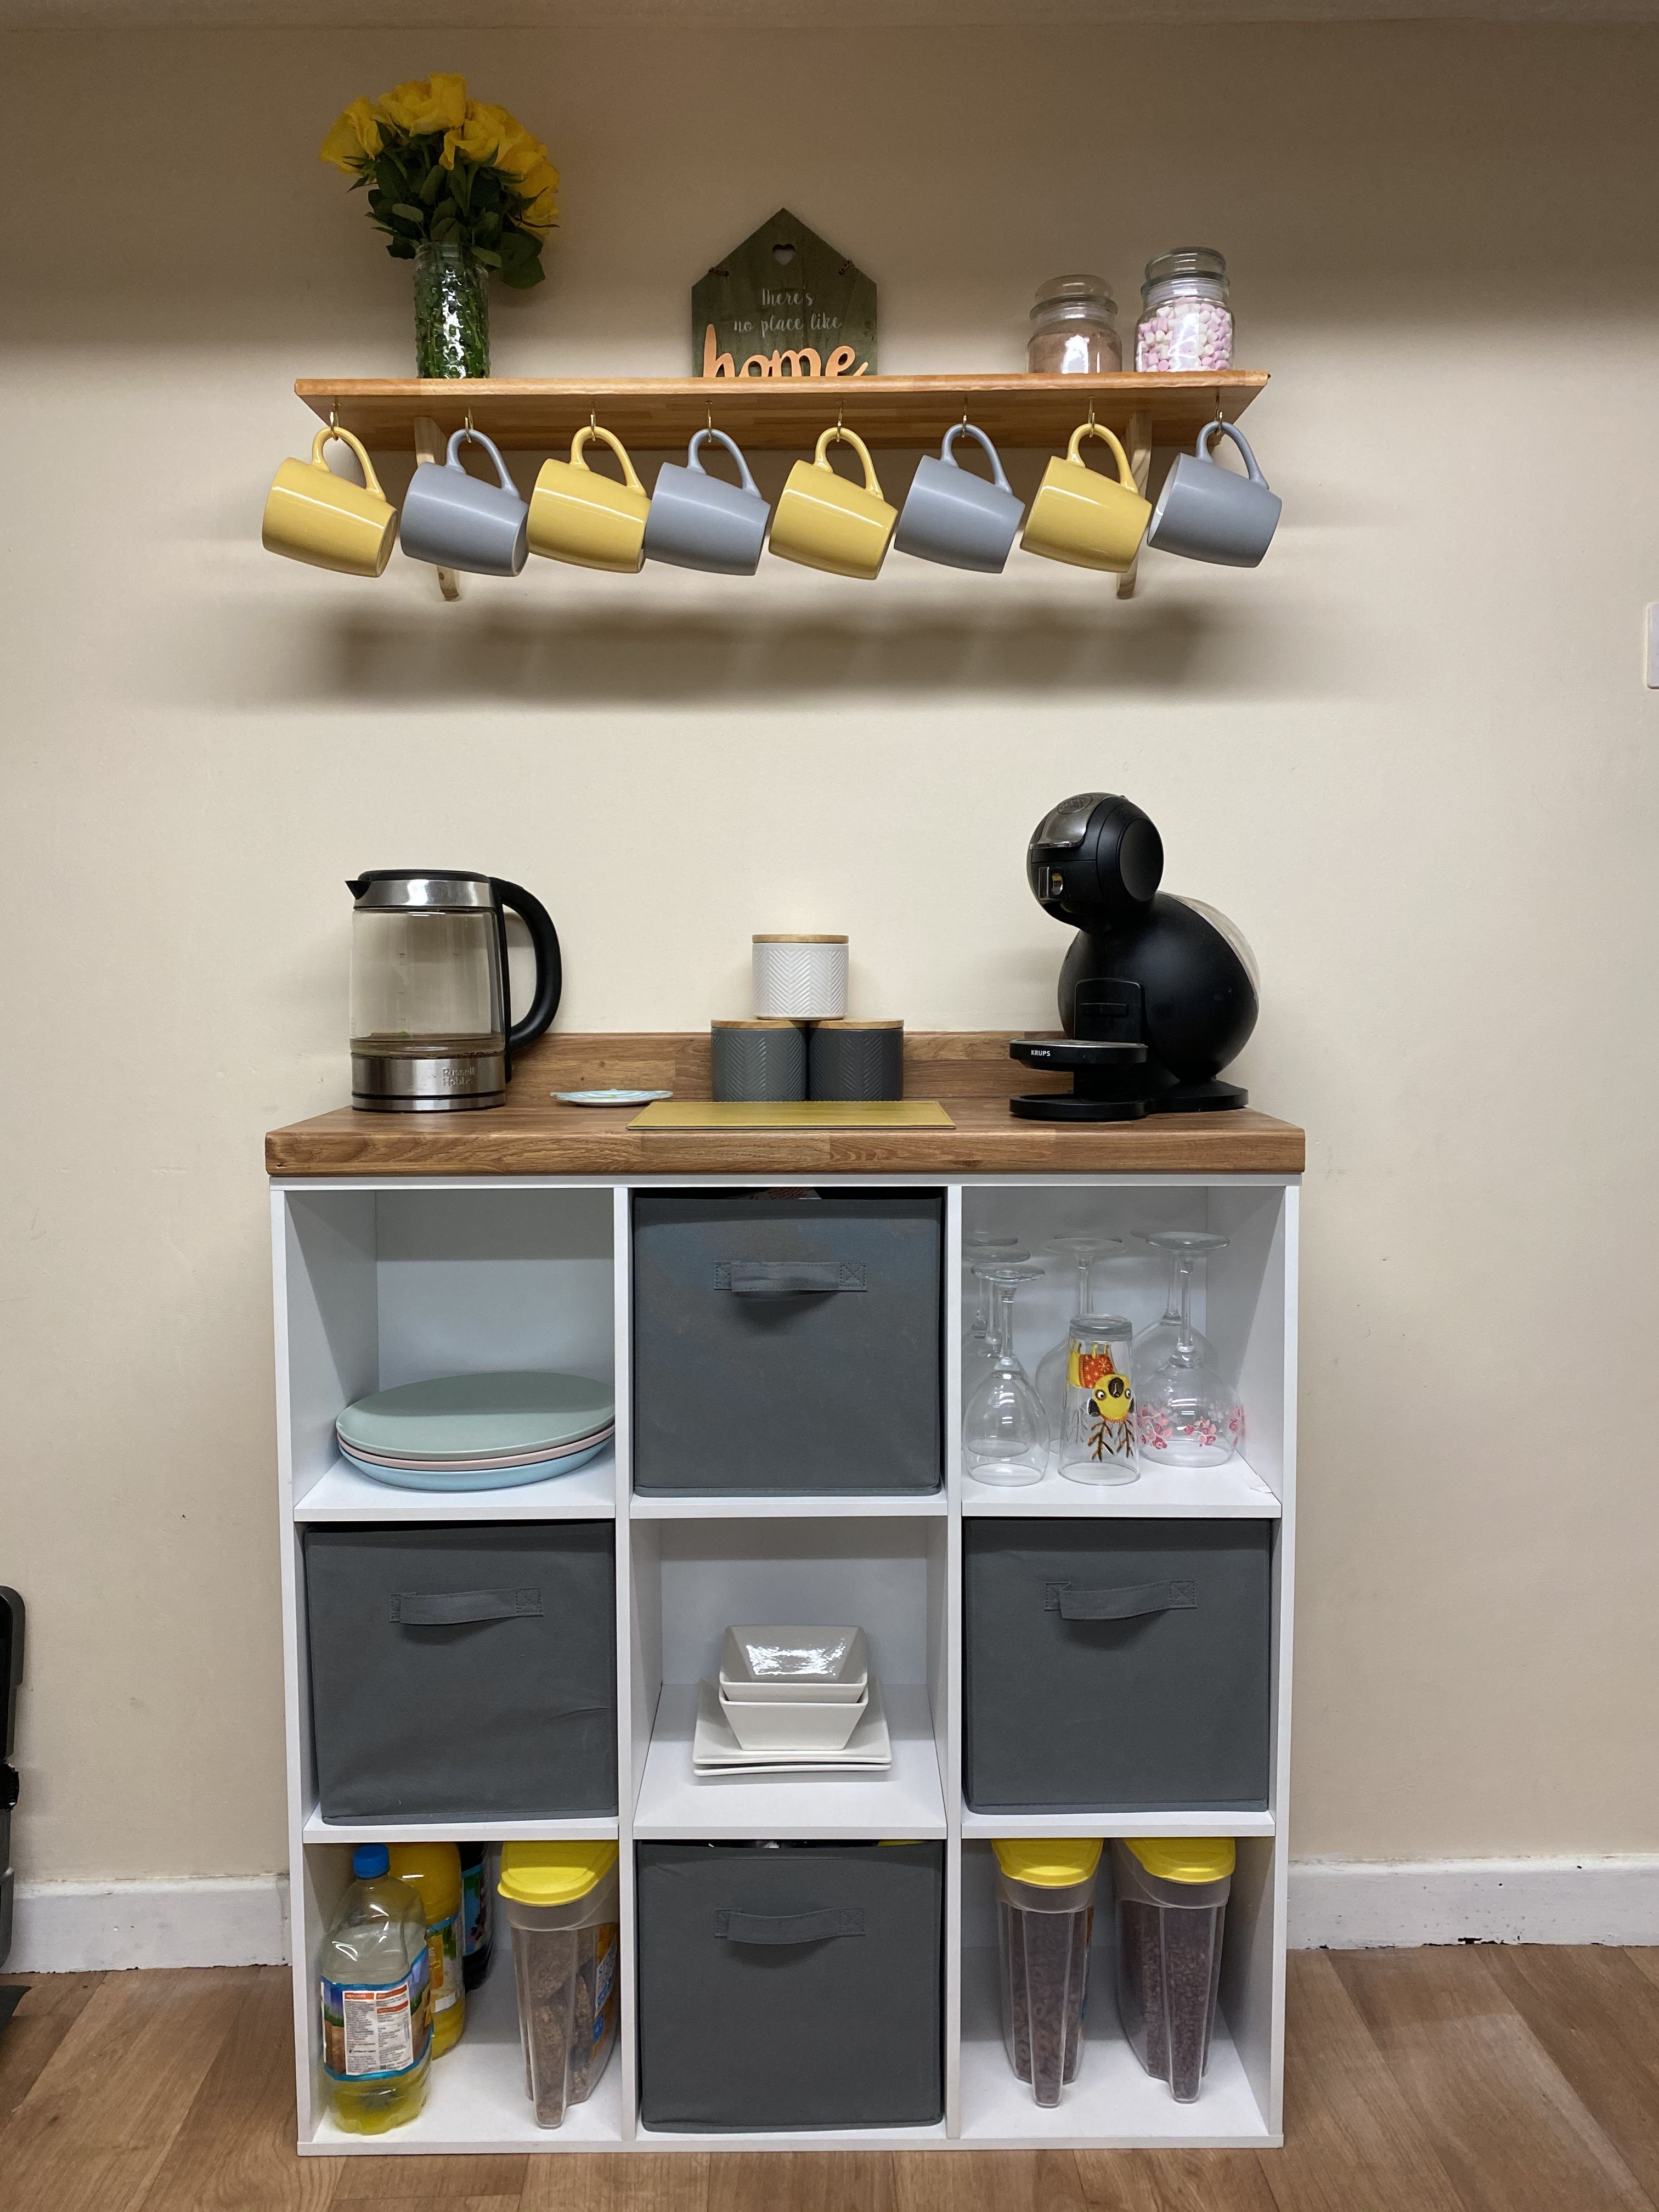 We made a coffee bar out of a cube unit, worktops and a